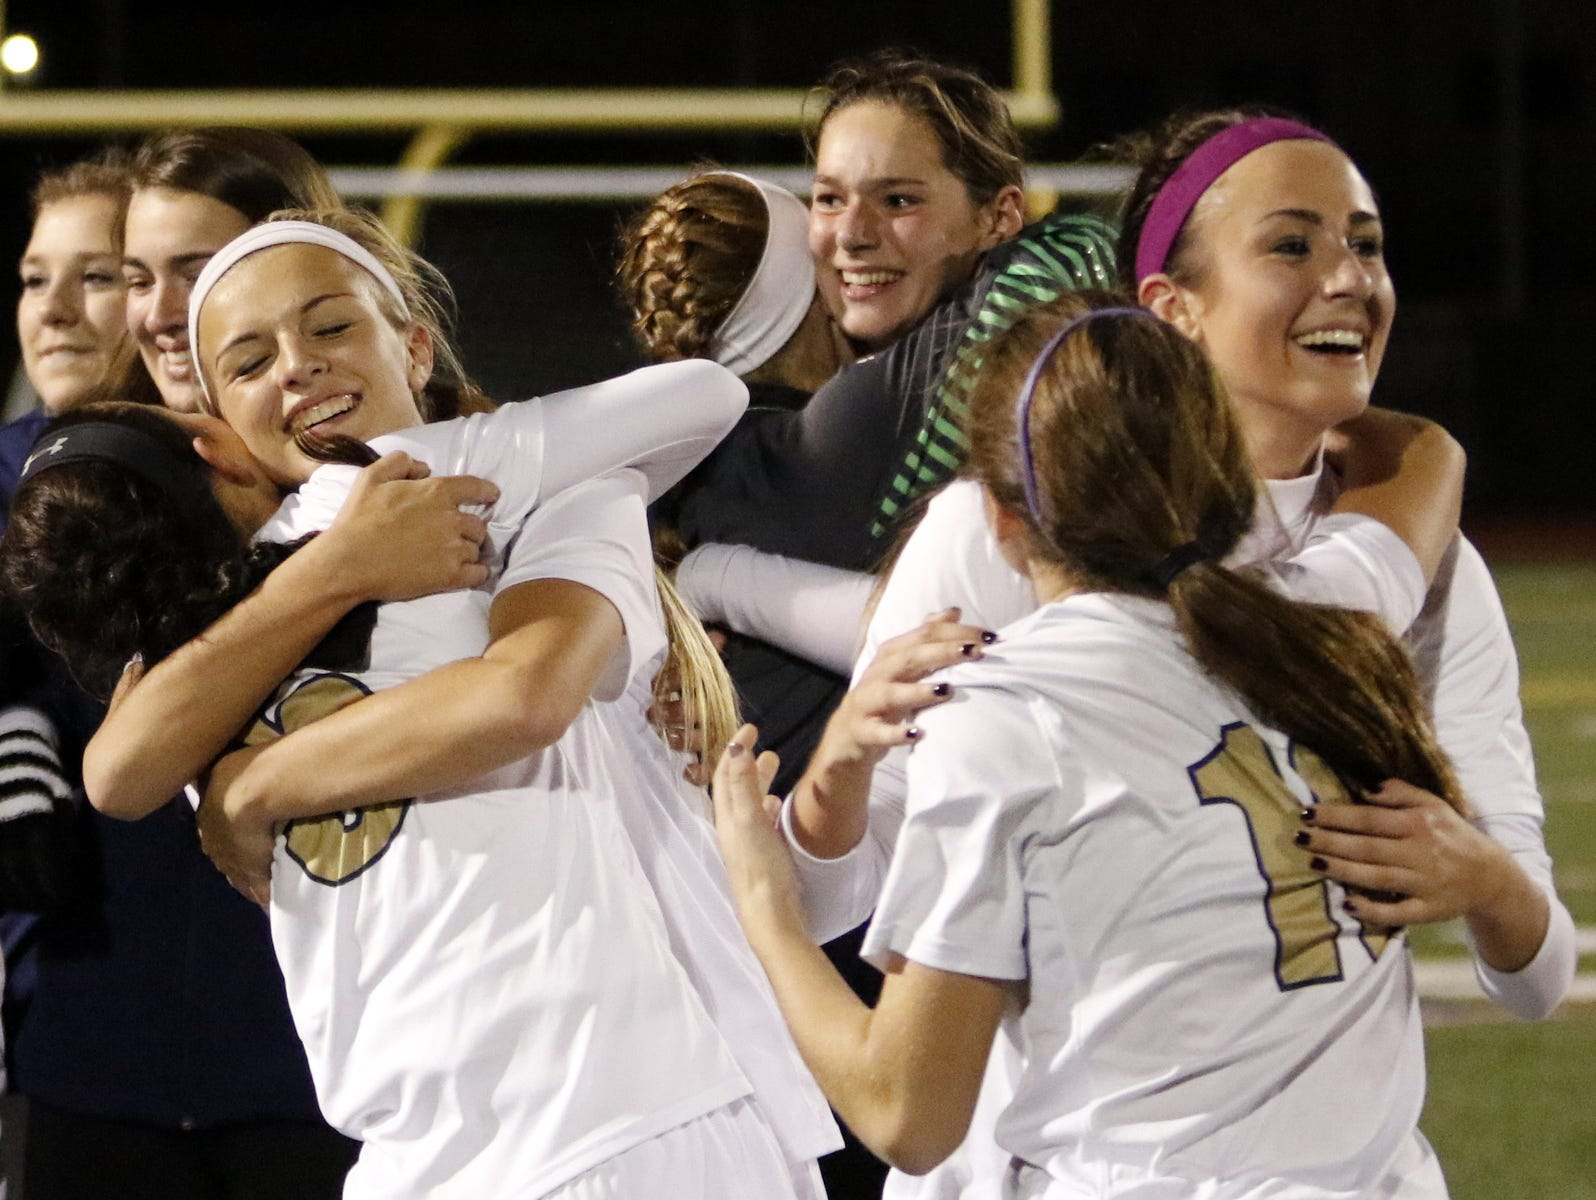 Notre Dame players celebrate their Class C quarterfinal win over Sauquoit Valley.